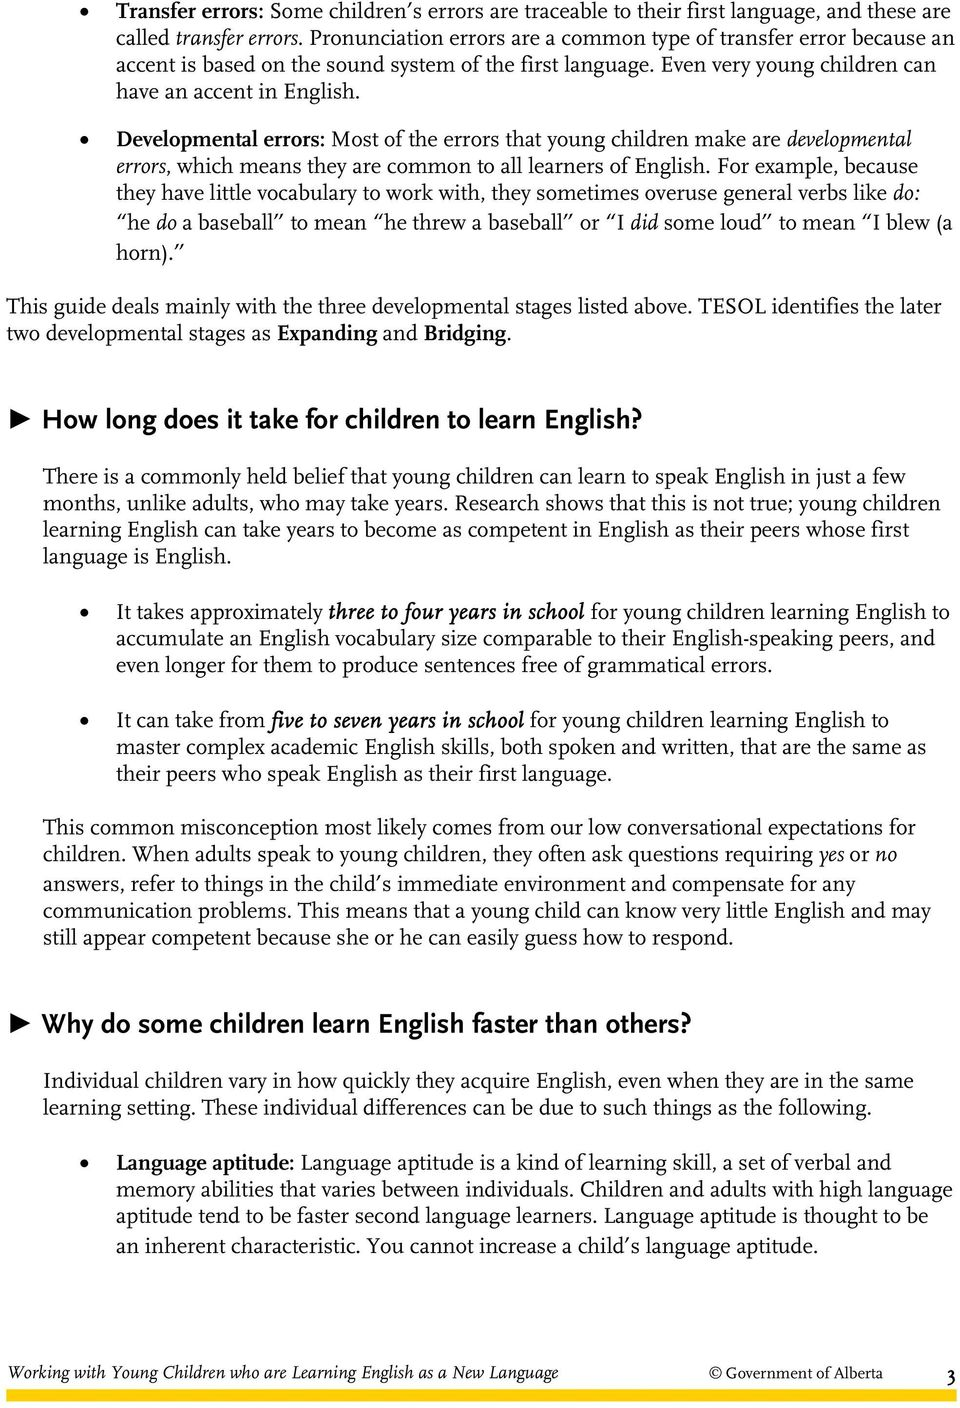 Developmental errors: Most of the errors that young children make are developmental errors, which means they are common to all learners of English.